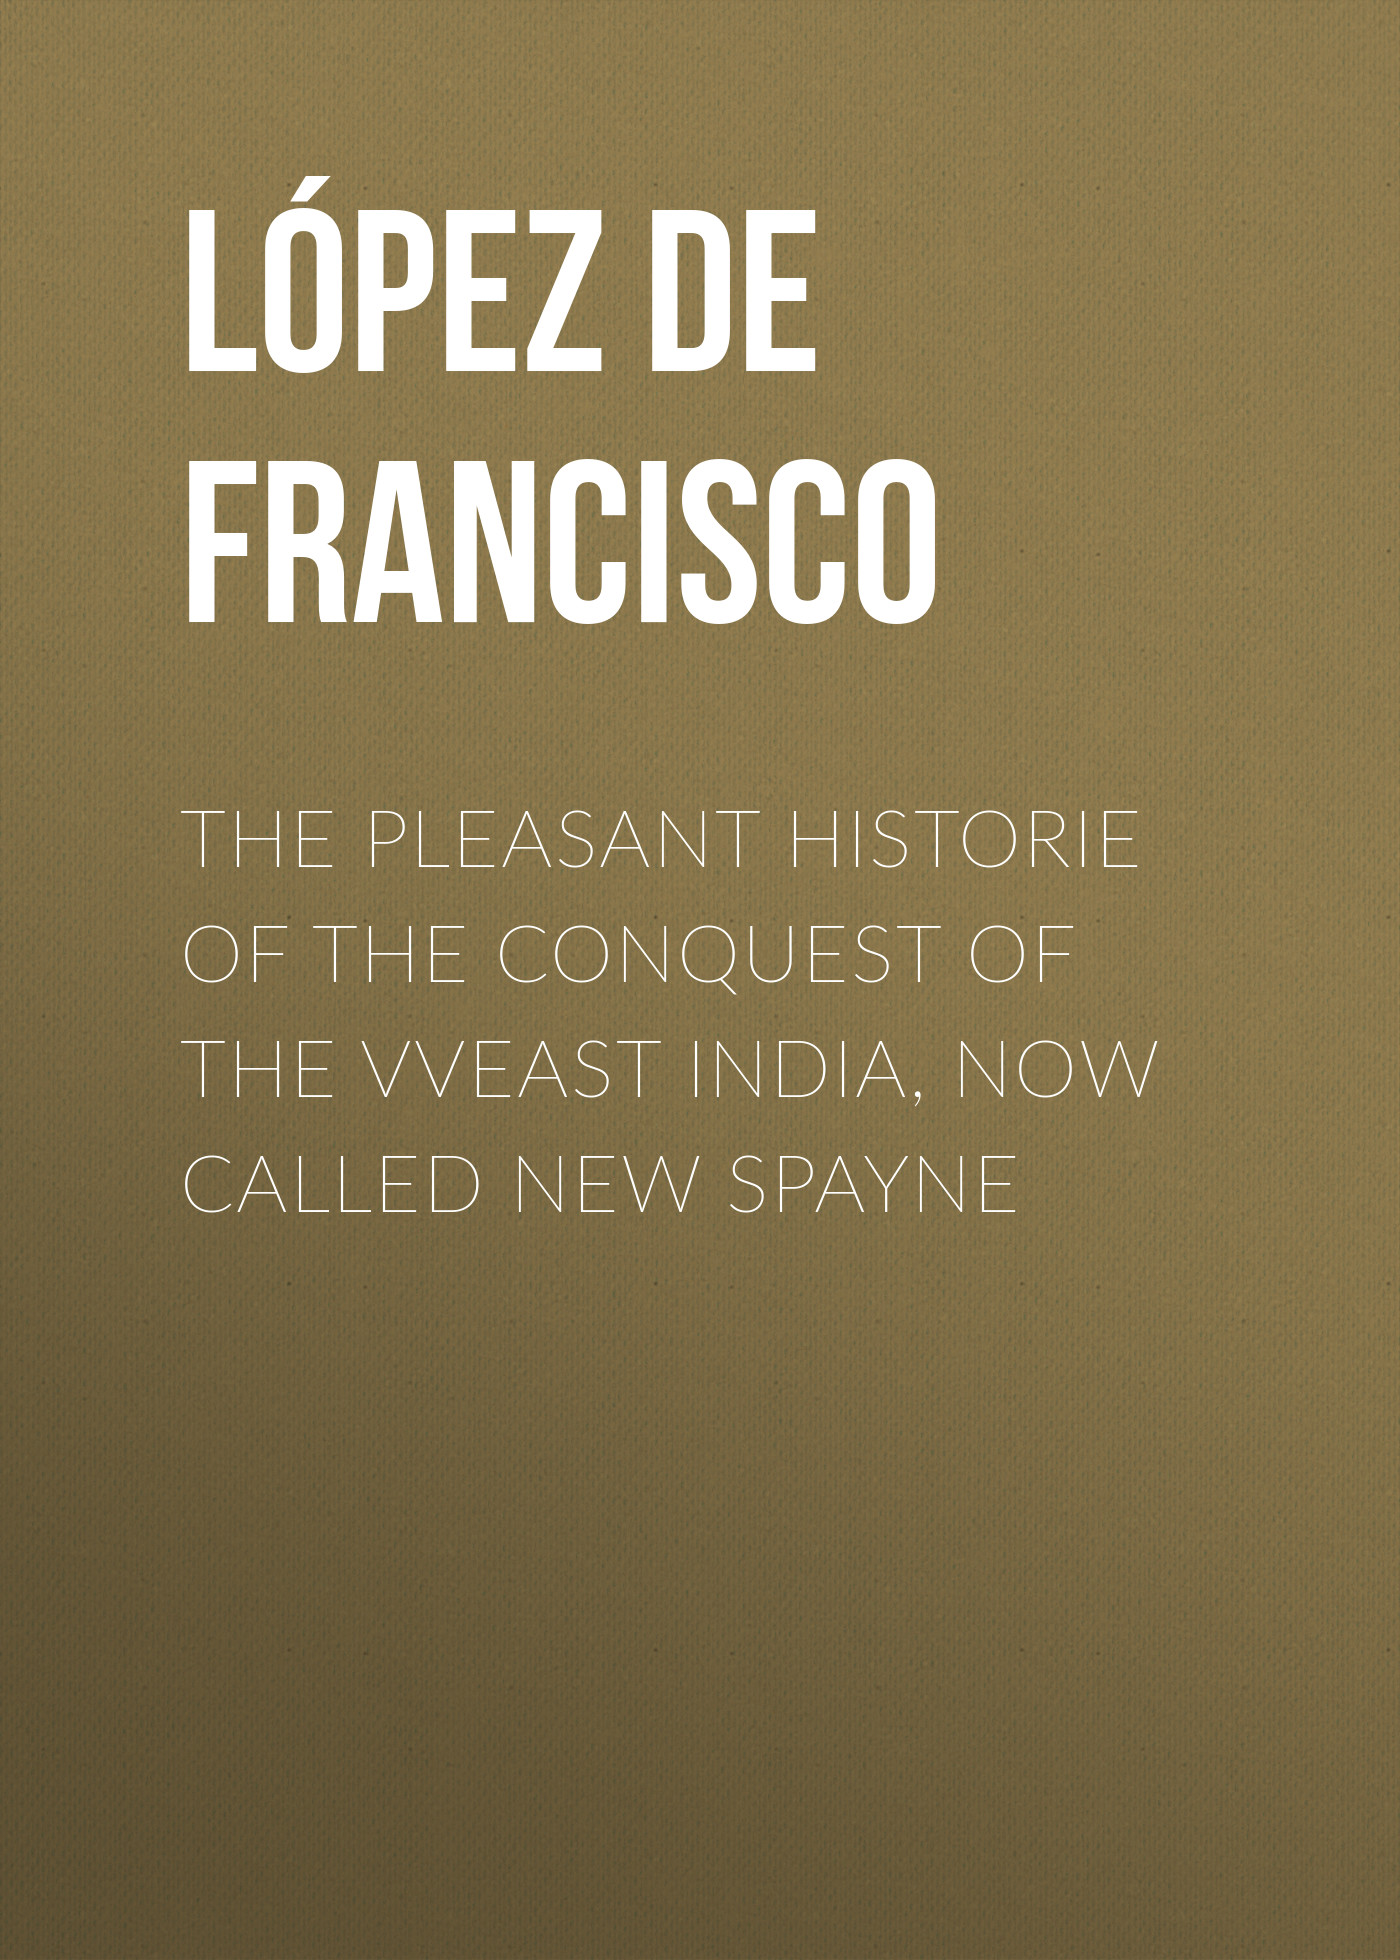 López de Gómara Francisco The pleasant historie of the conquest of the VVeast India, now called new Spayne pleasant vices